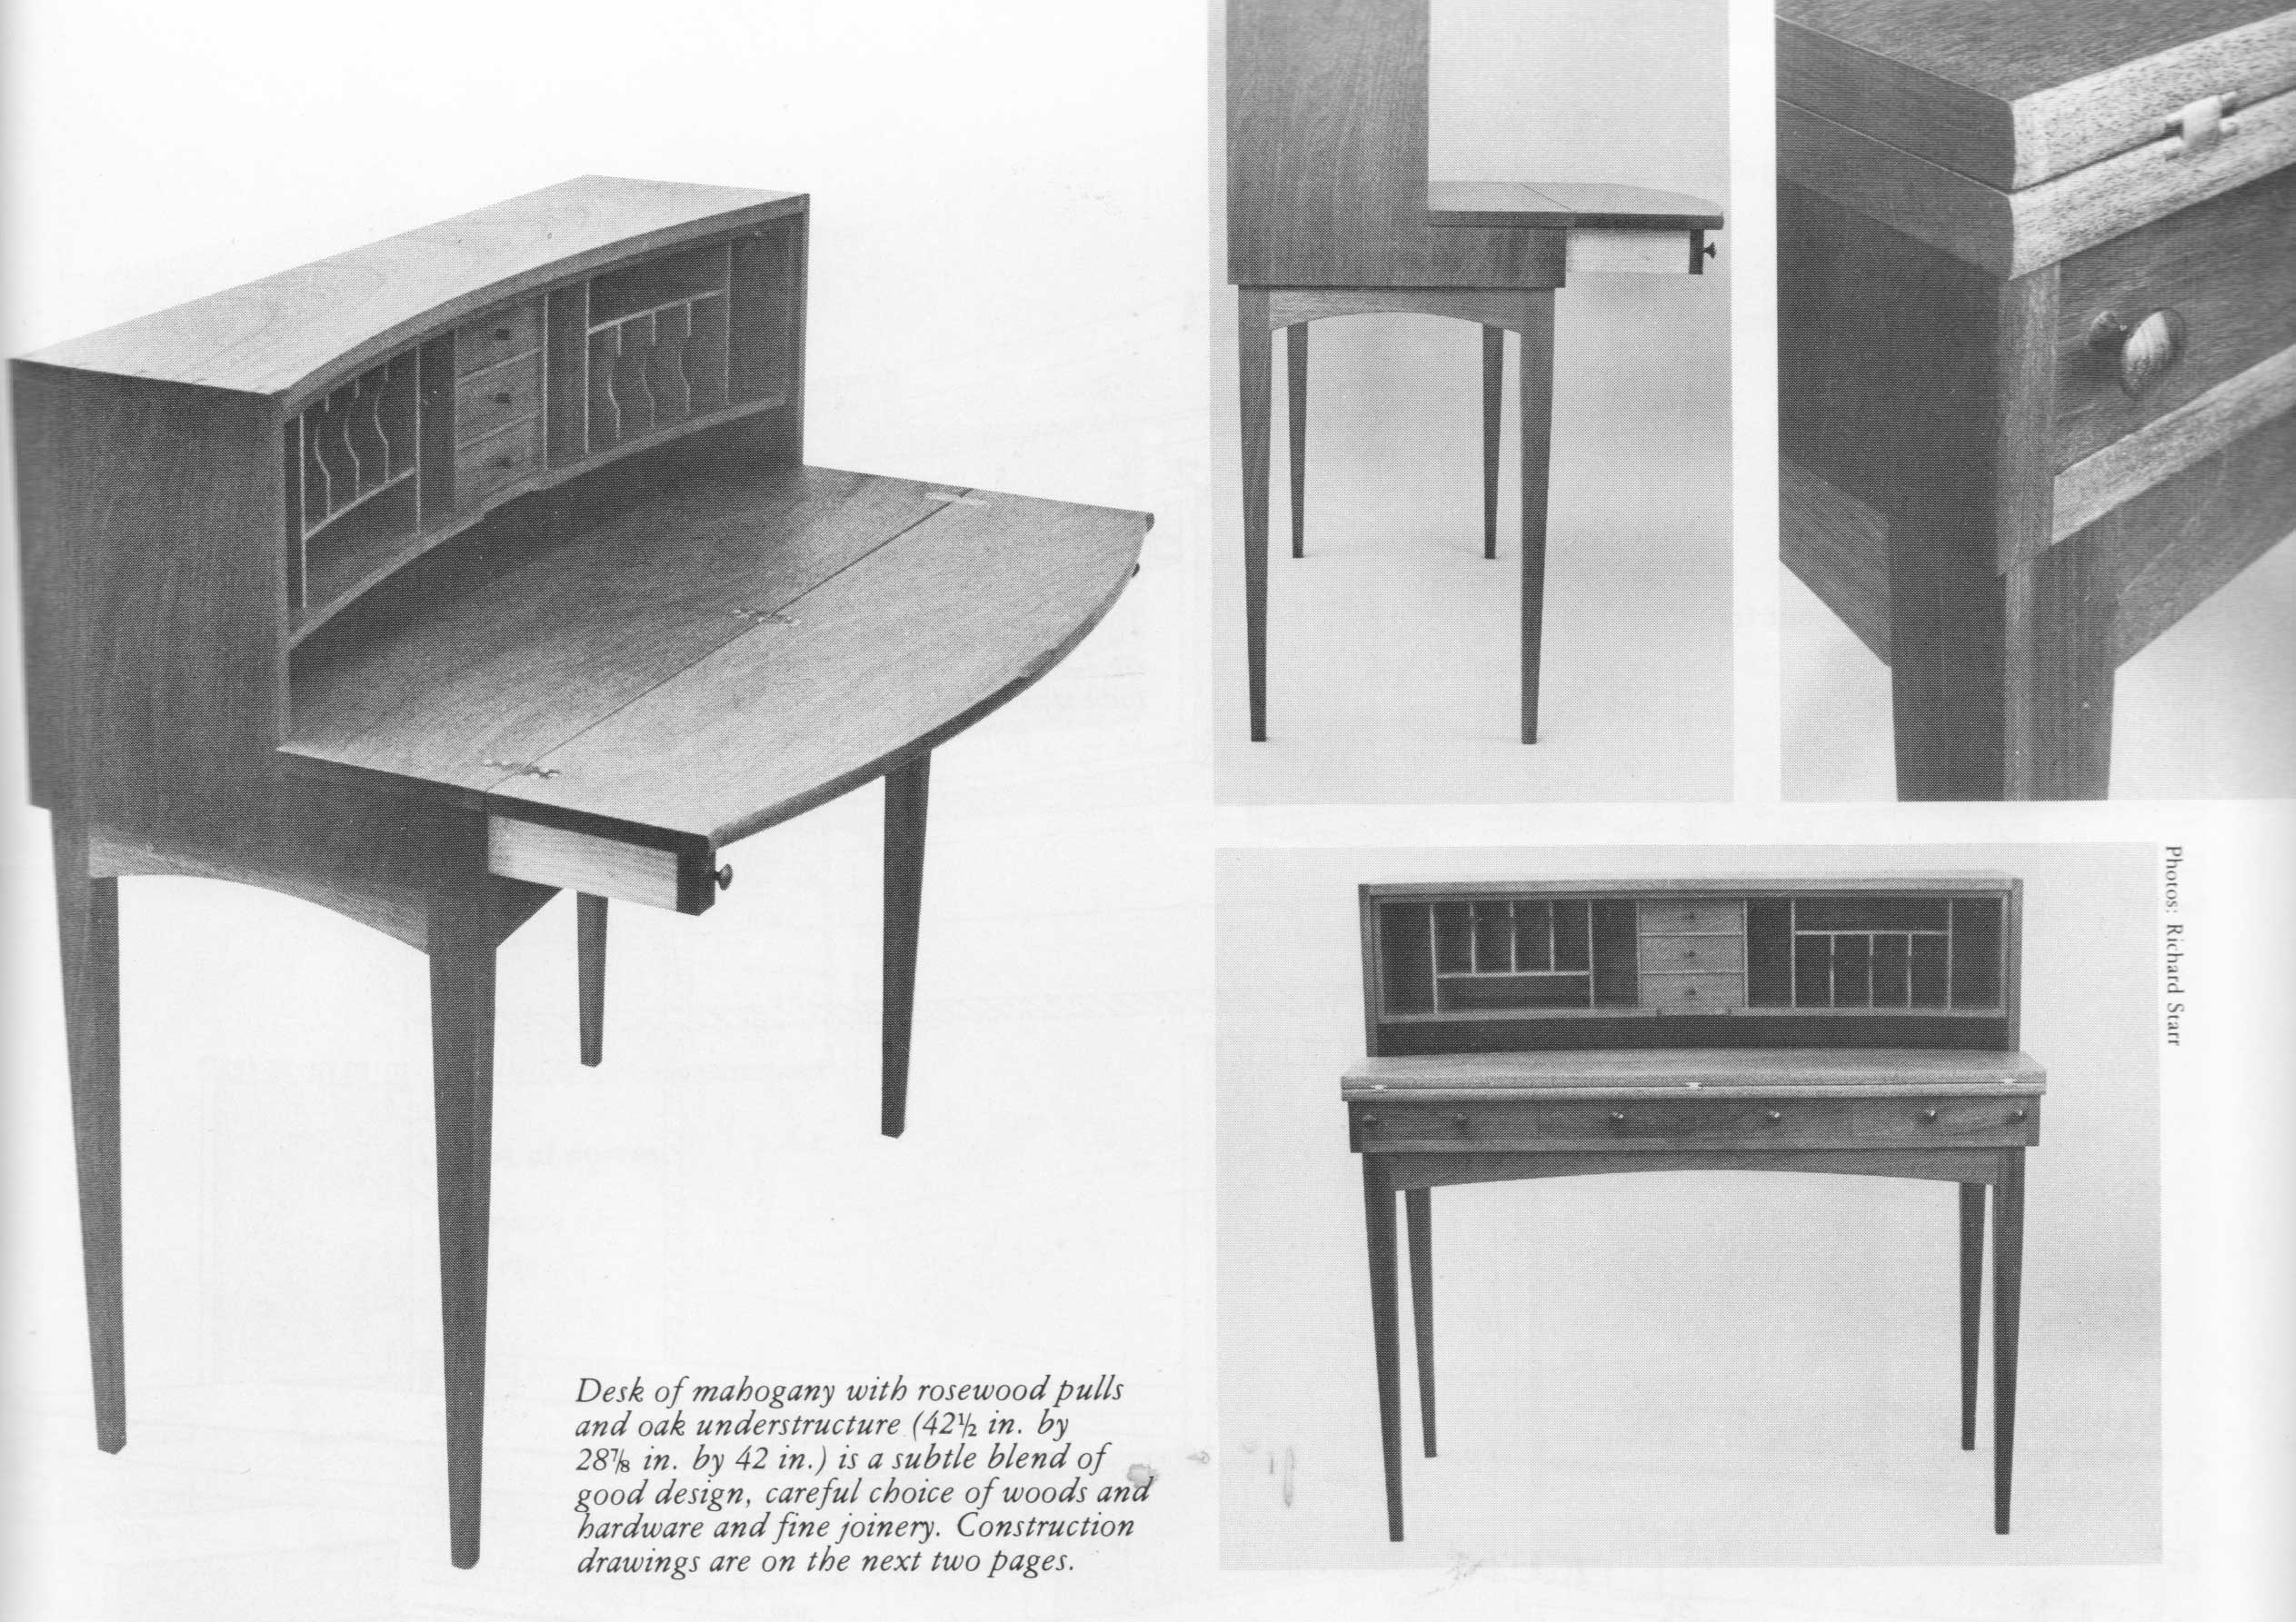 Fine Woodworking Desk Plans Get Free Woodworking Plans